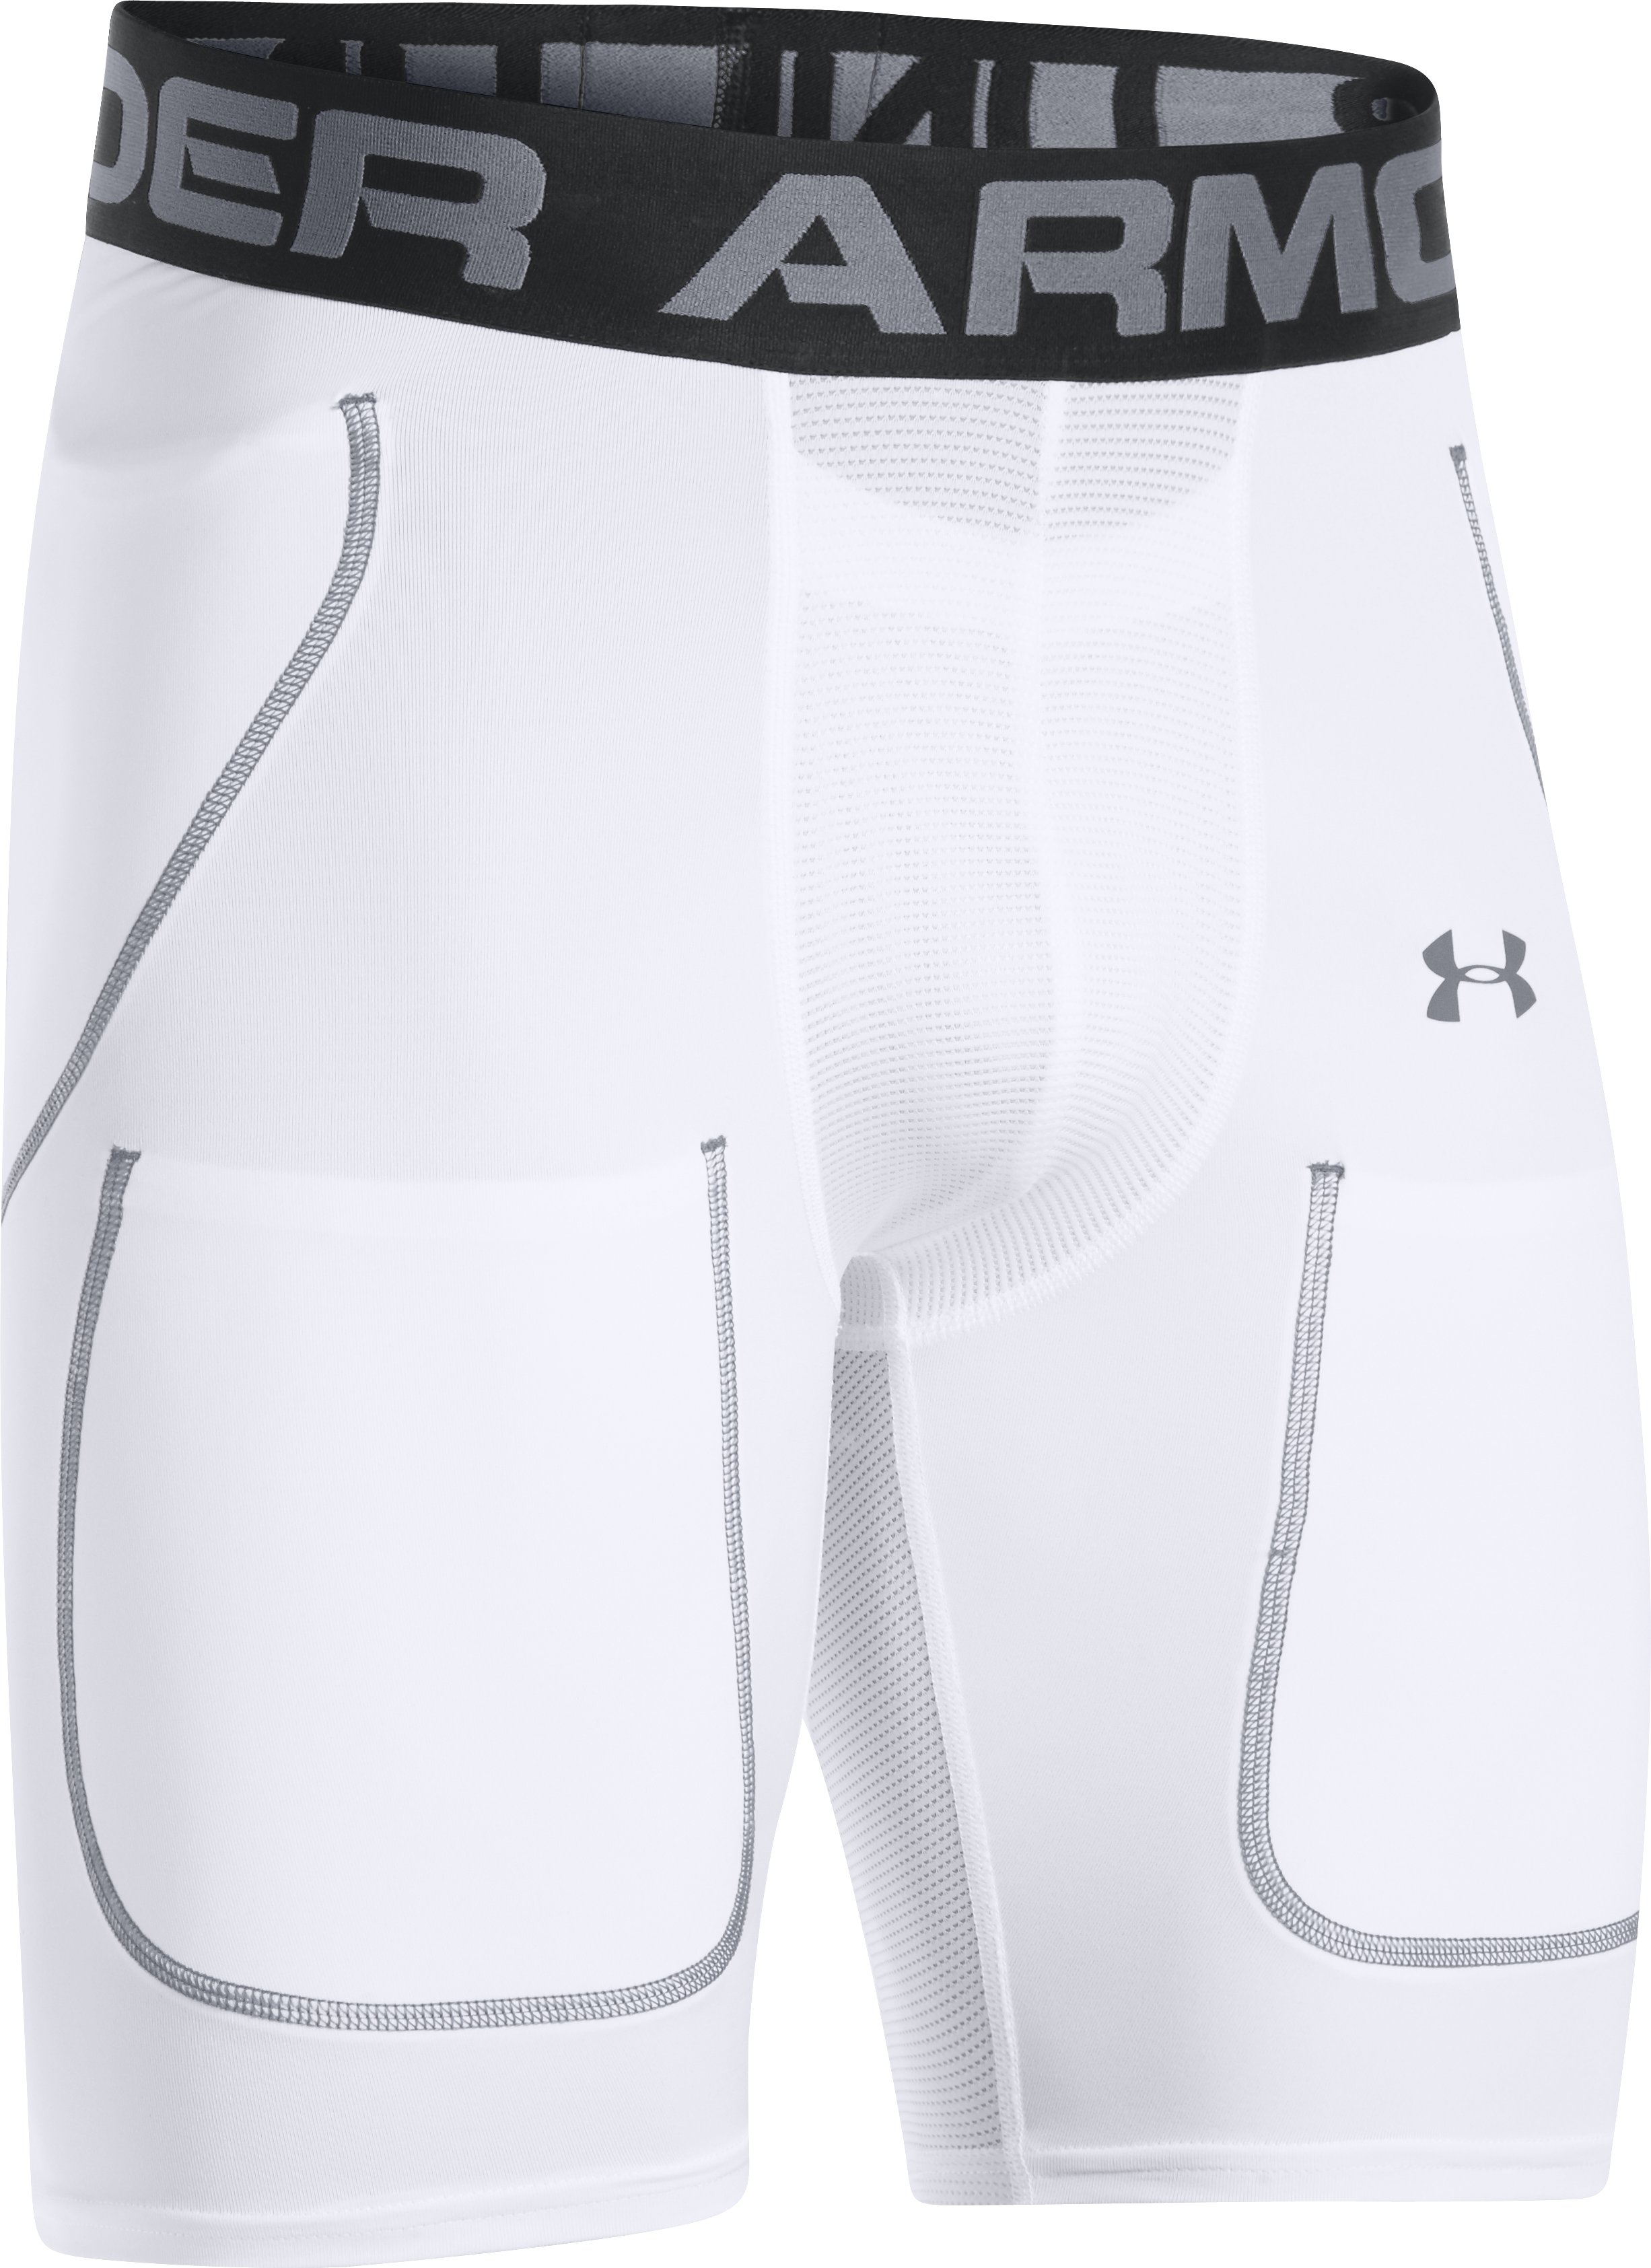 Men's UA 6-Pad Football Girdle, White